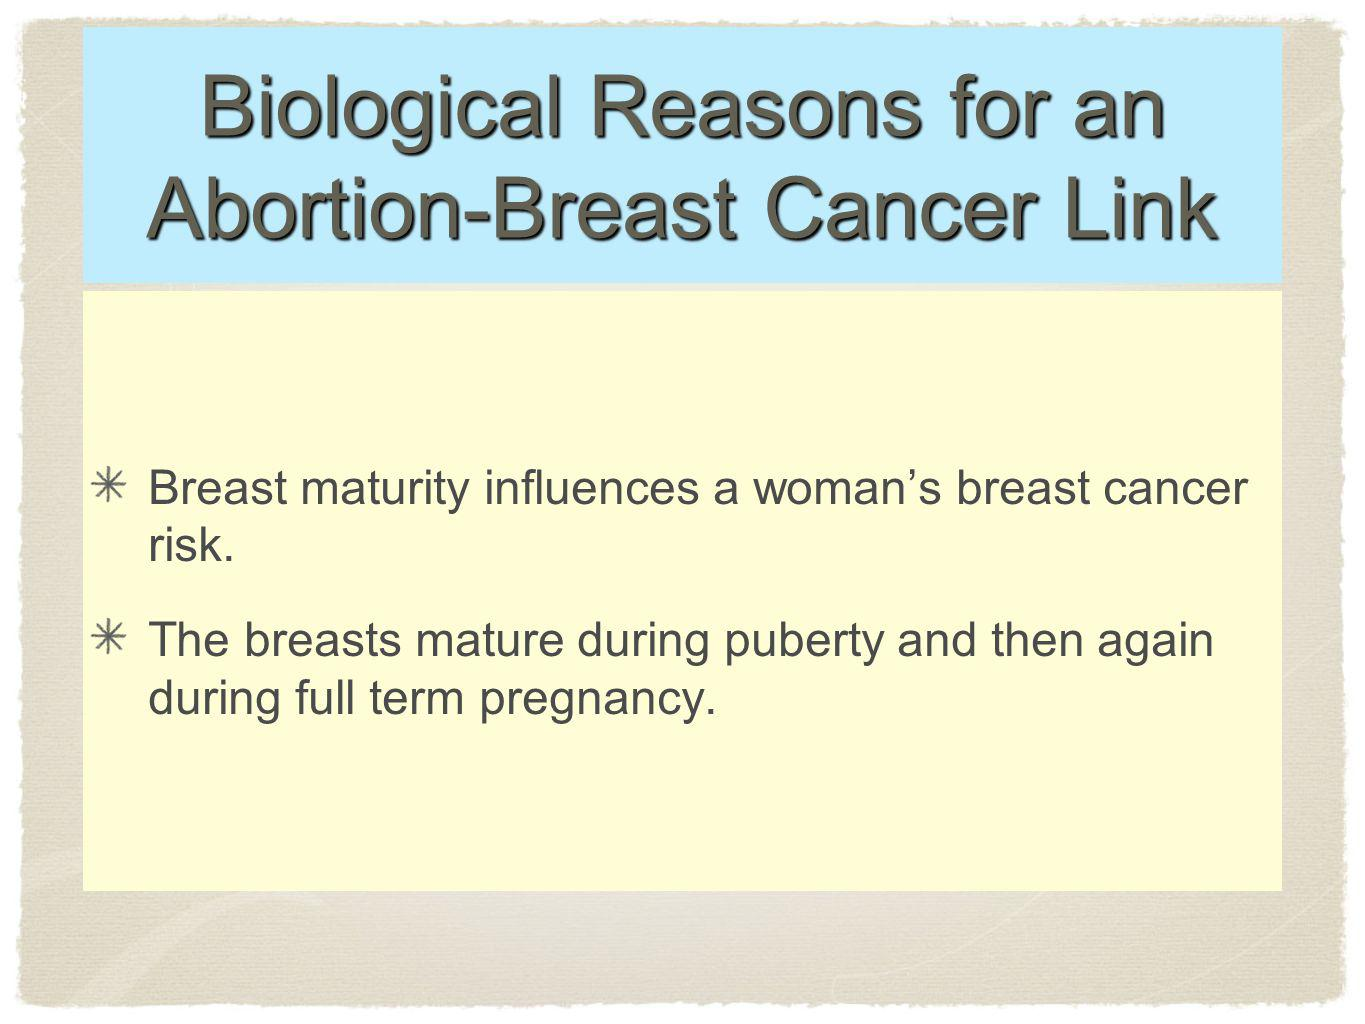 Biological Reasons for an Abortion-Breast Cancer Link